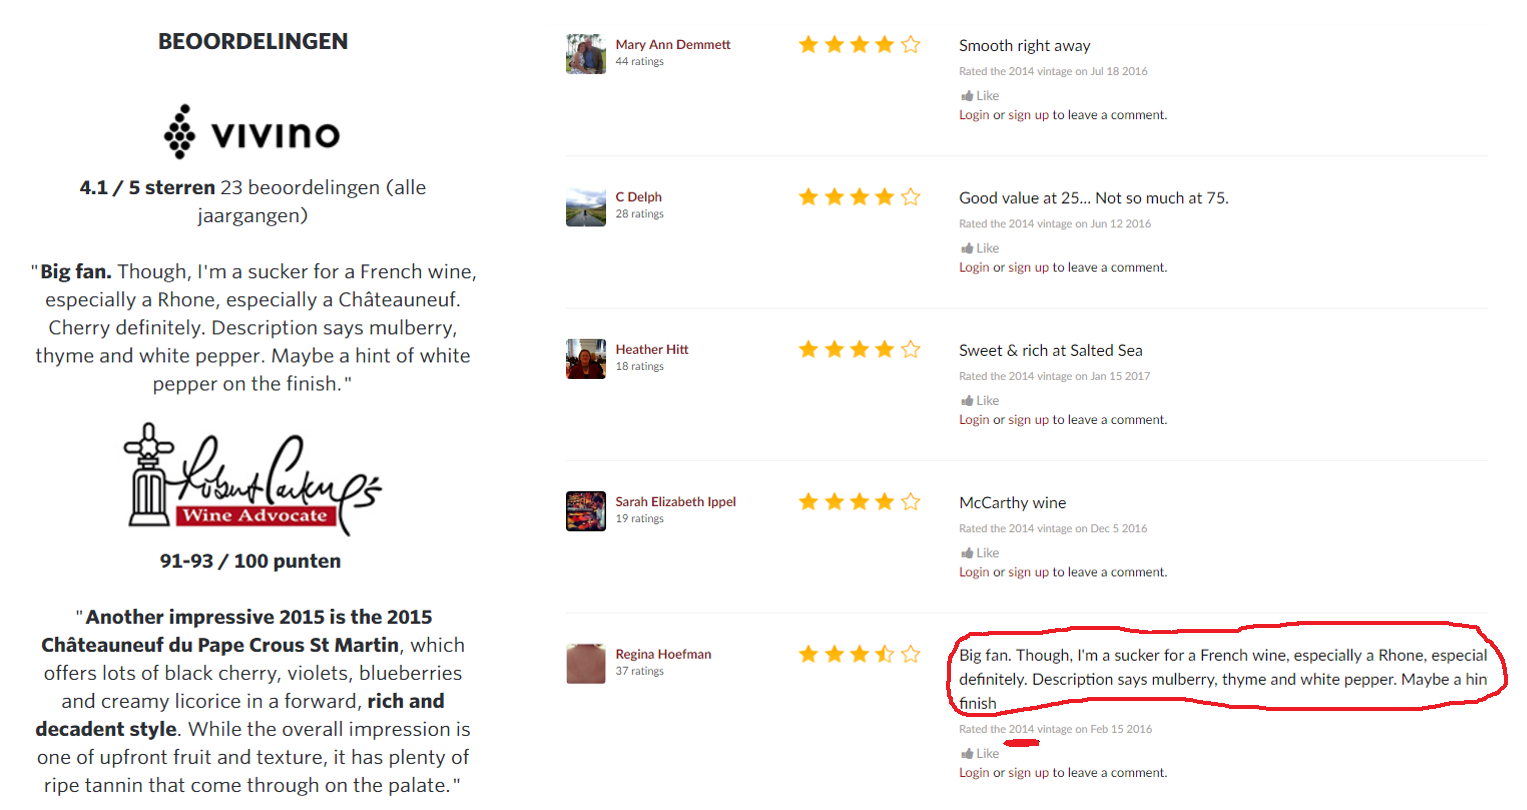 Vivino rating 2015 - 2014